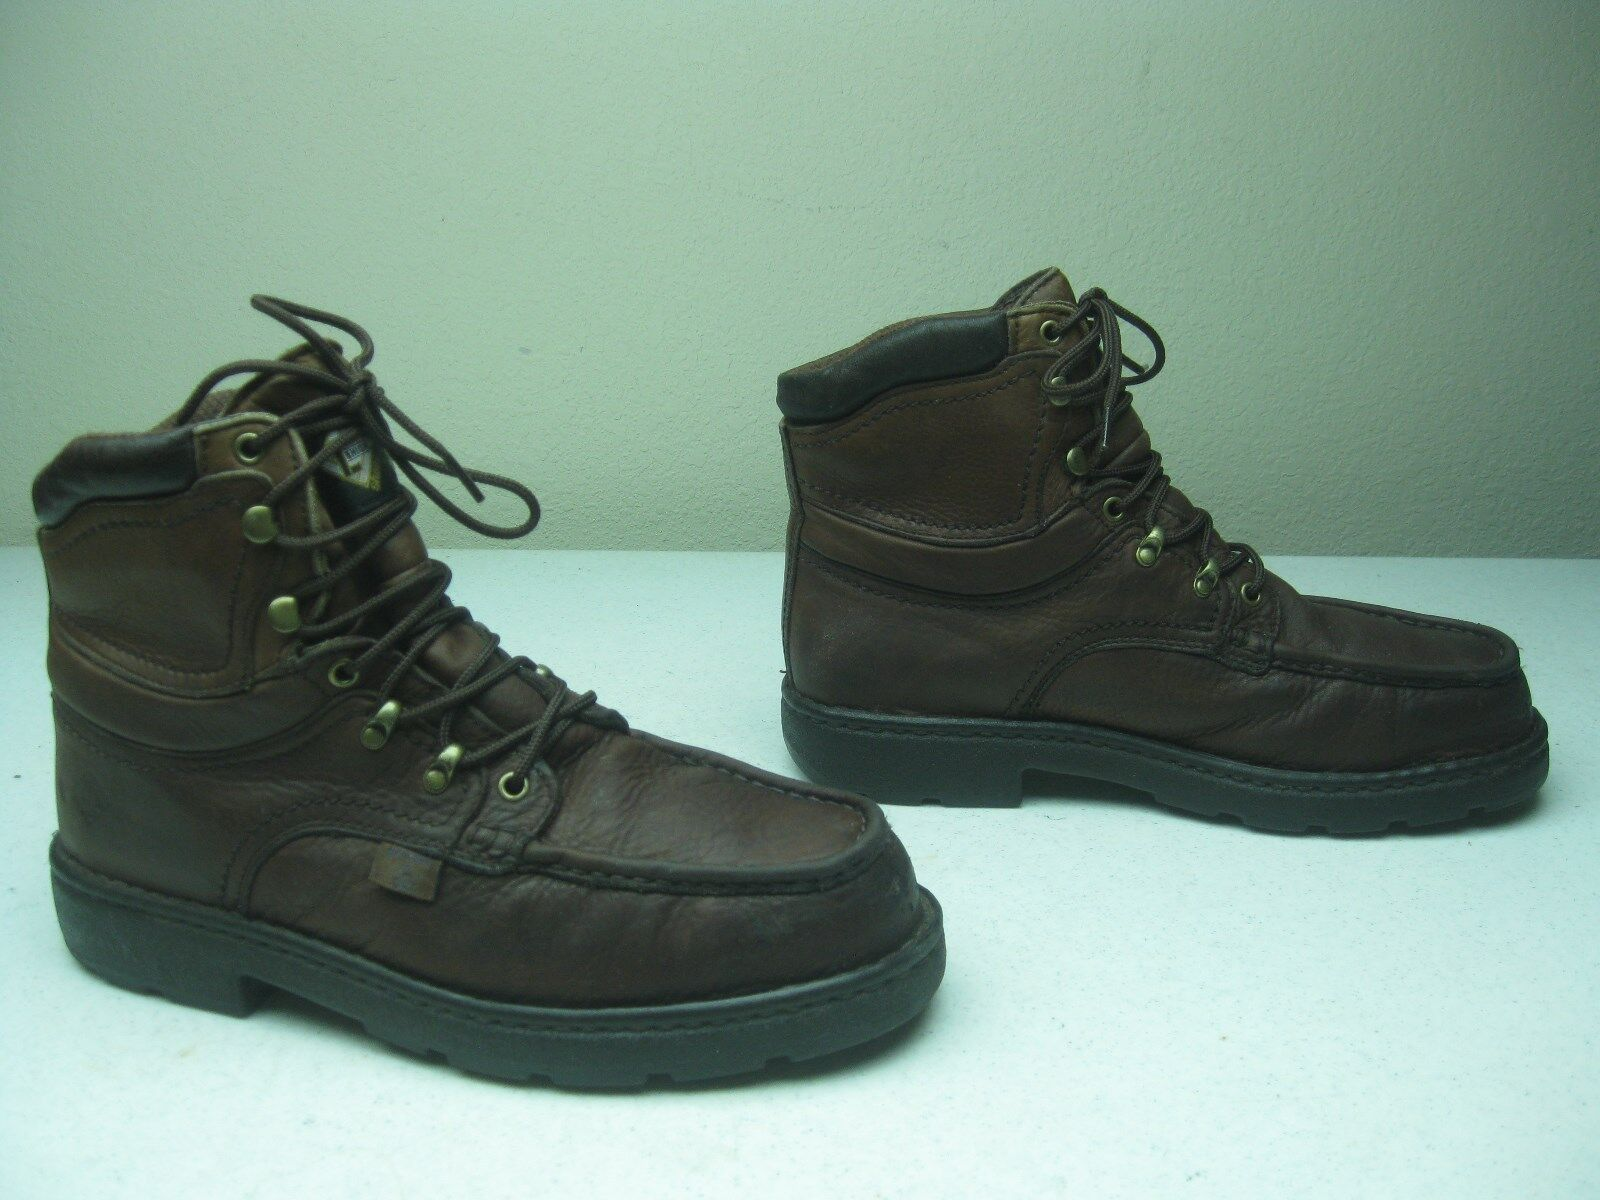 DISTRESSED MADE IN & USA BROWN LACE UP LEHIGH & IN DRY STEEL TOE WORK BOOTS 10 EE 3d28a5